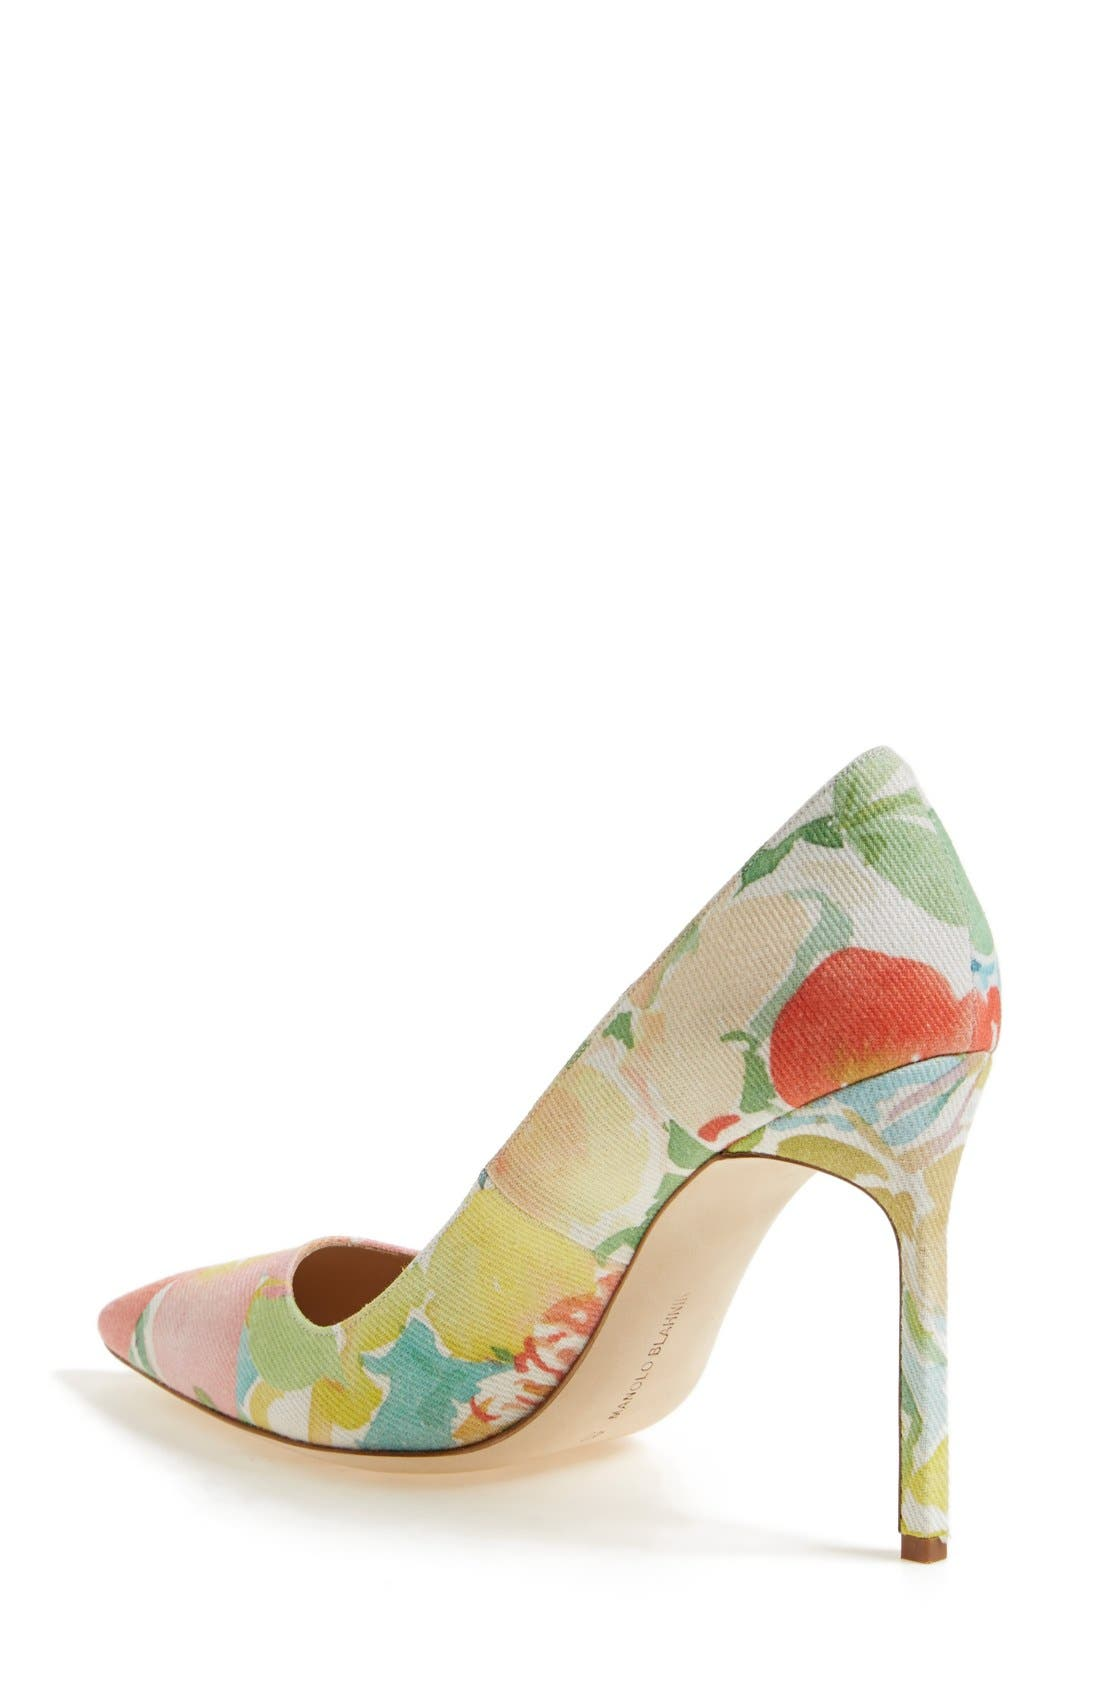 Pointy Toe Pump,                             Alternate thumbnail 2, color,                             650